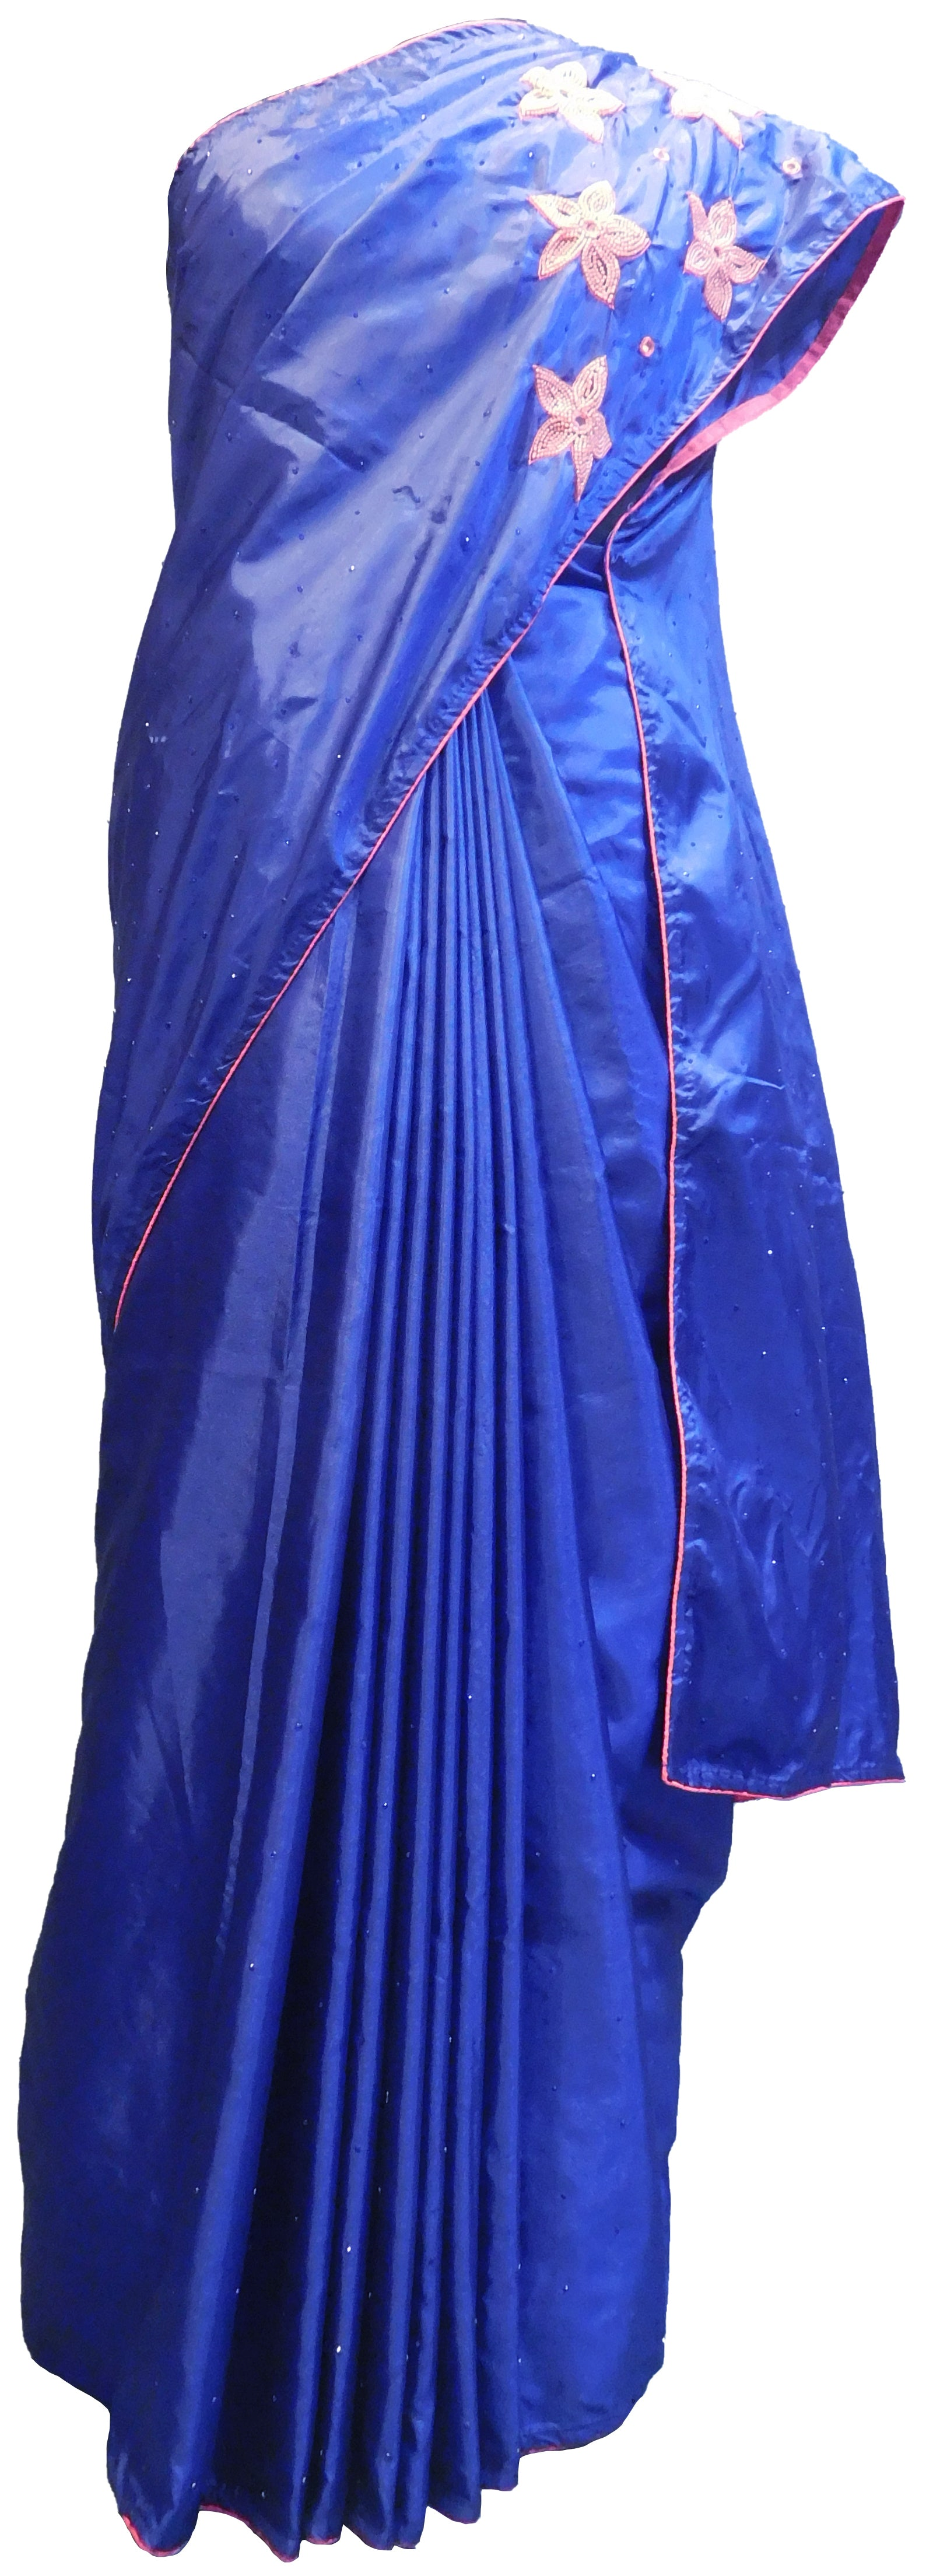 SMSAREE Blue Designer Wedding Partywear Silk Stone Mirror Beads & Thread Hand Embroidery Work Bridal Saree Sari With Blouse Piece E499